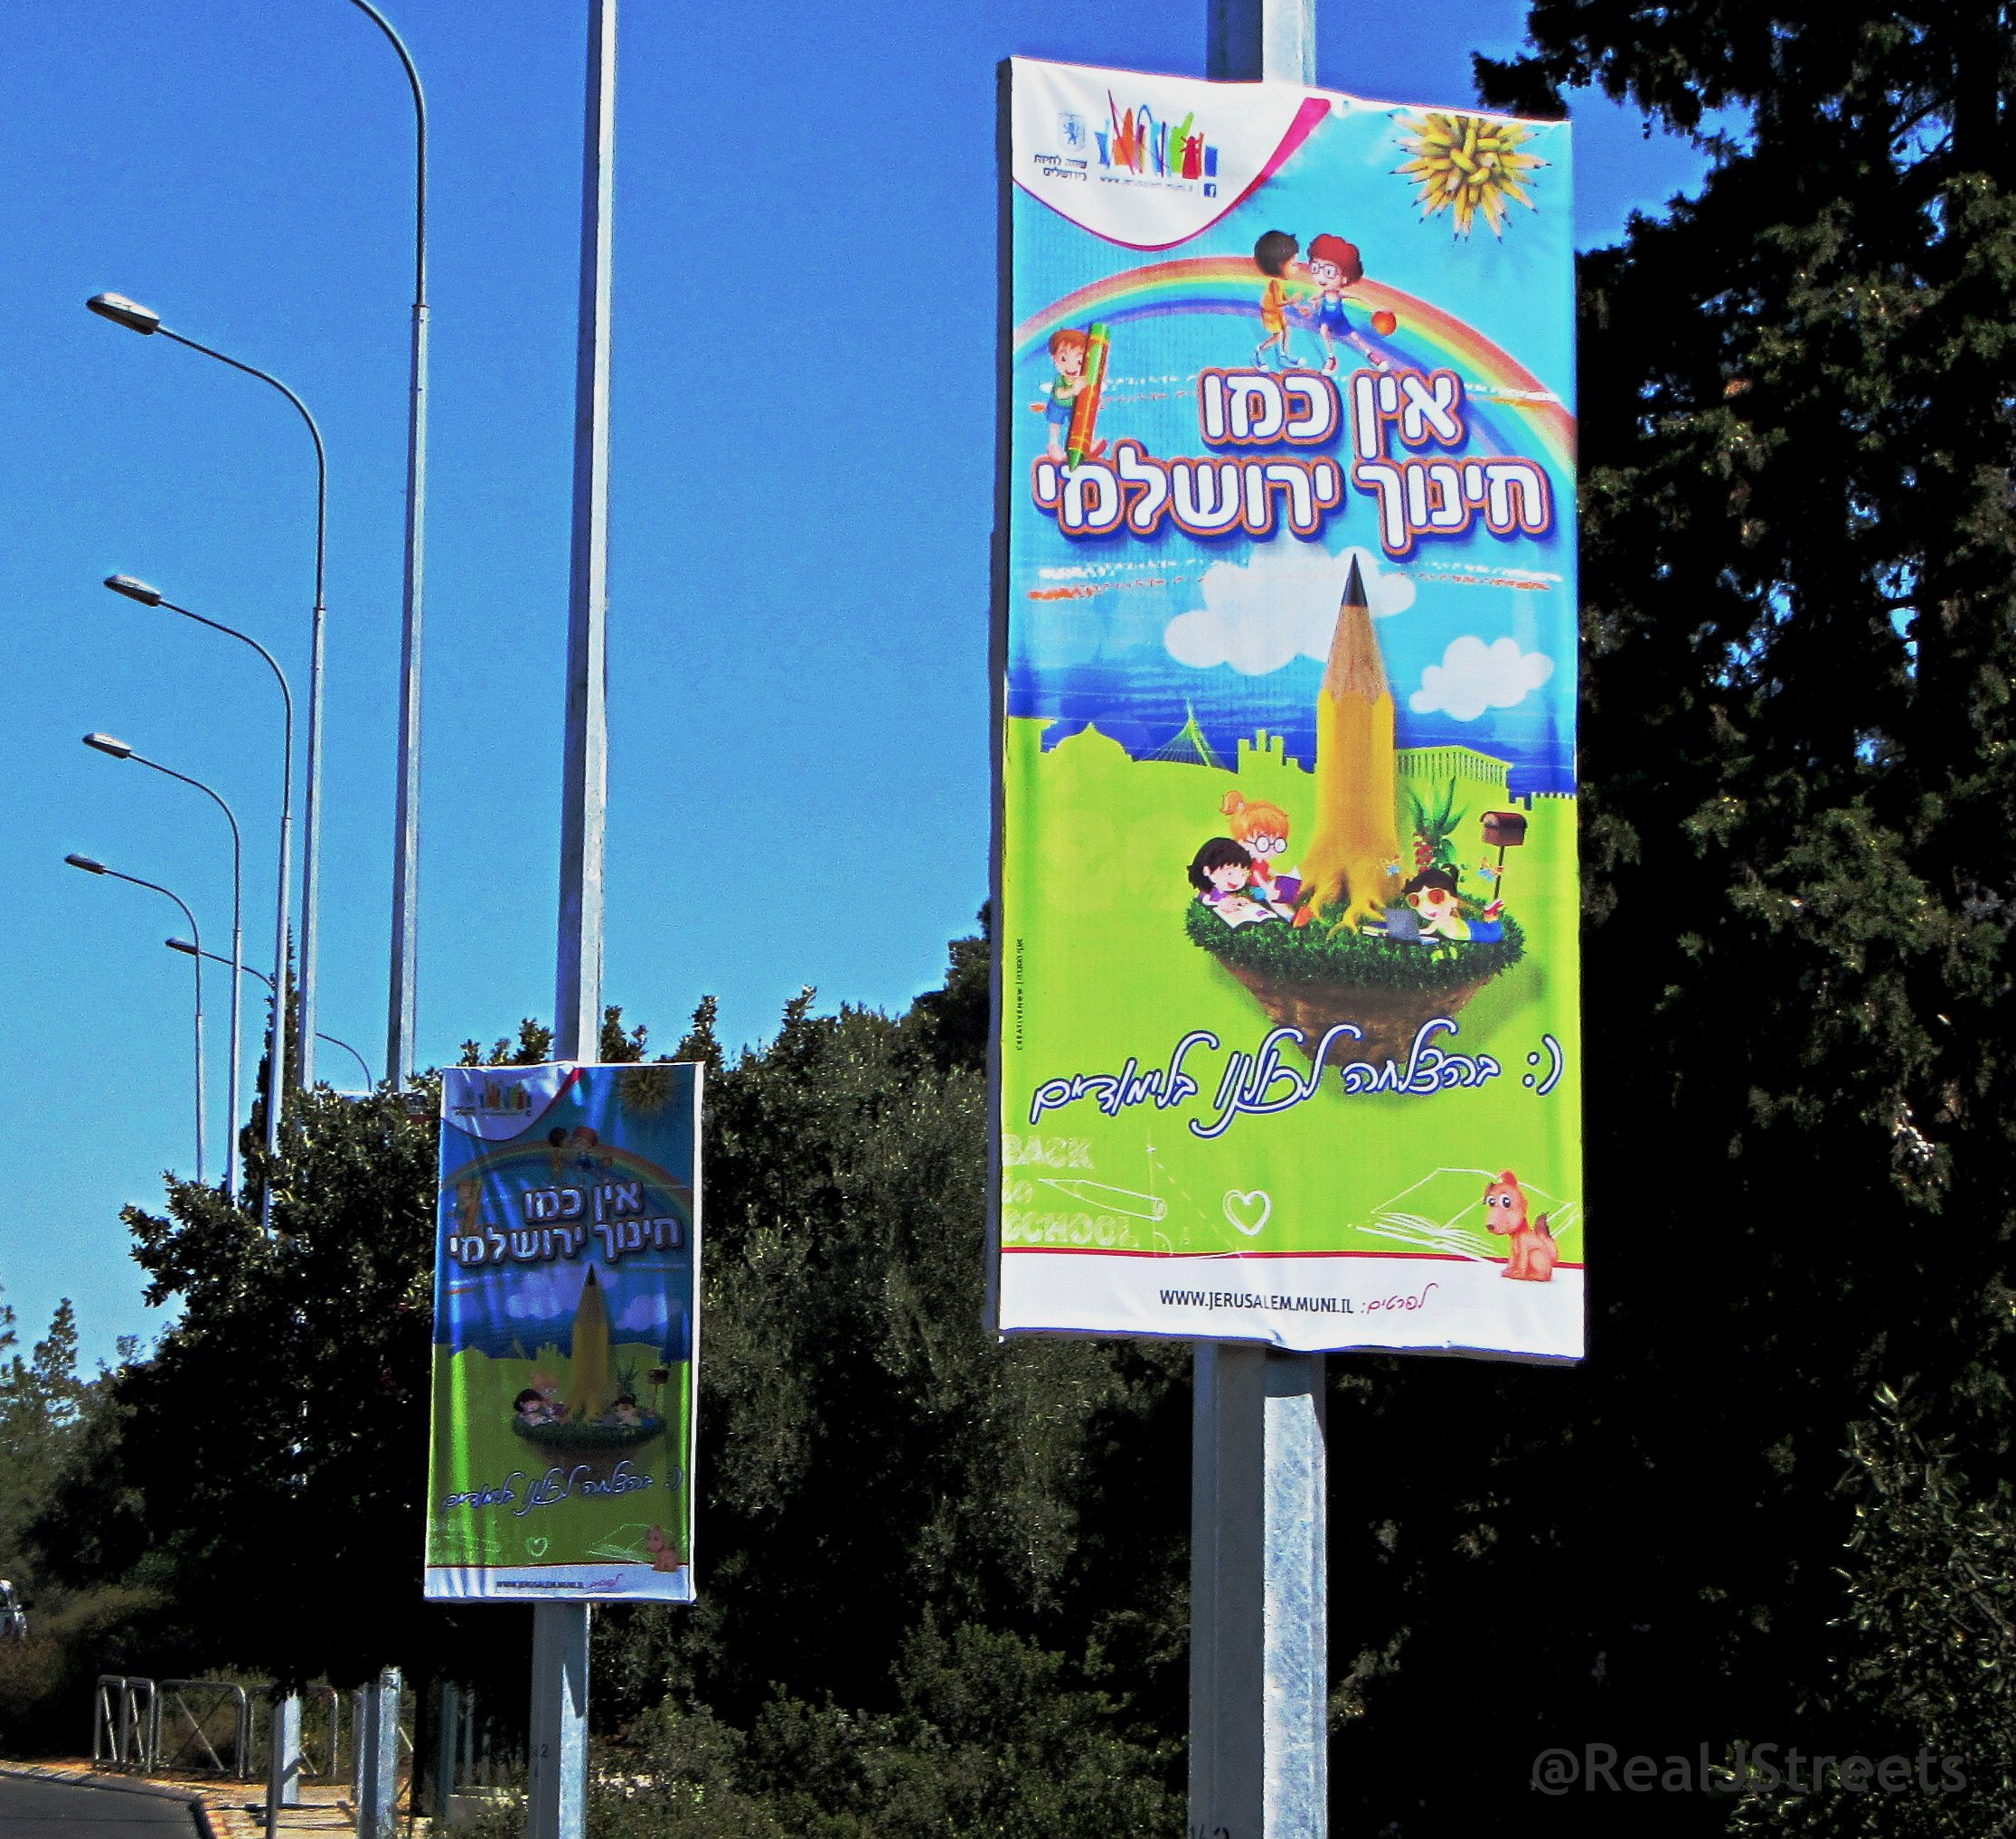 New school year starts in Jerusalem